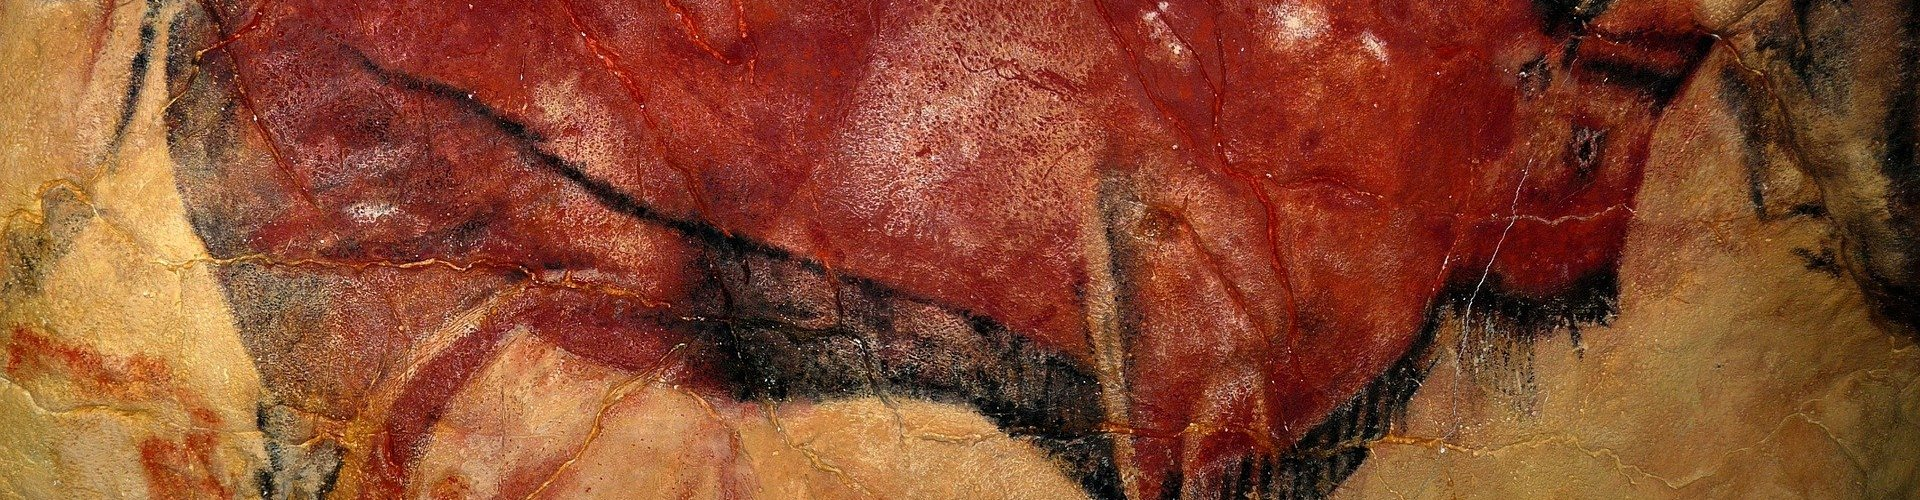 cave painting of a bison